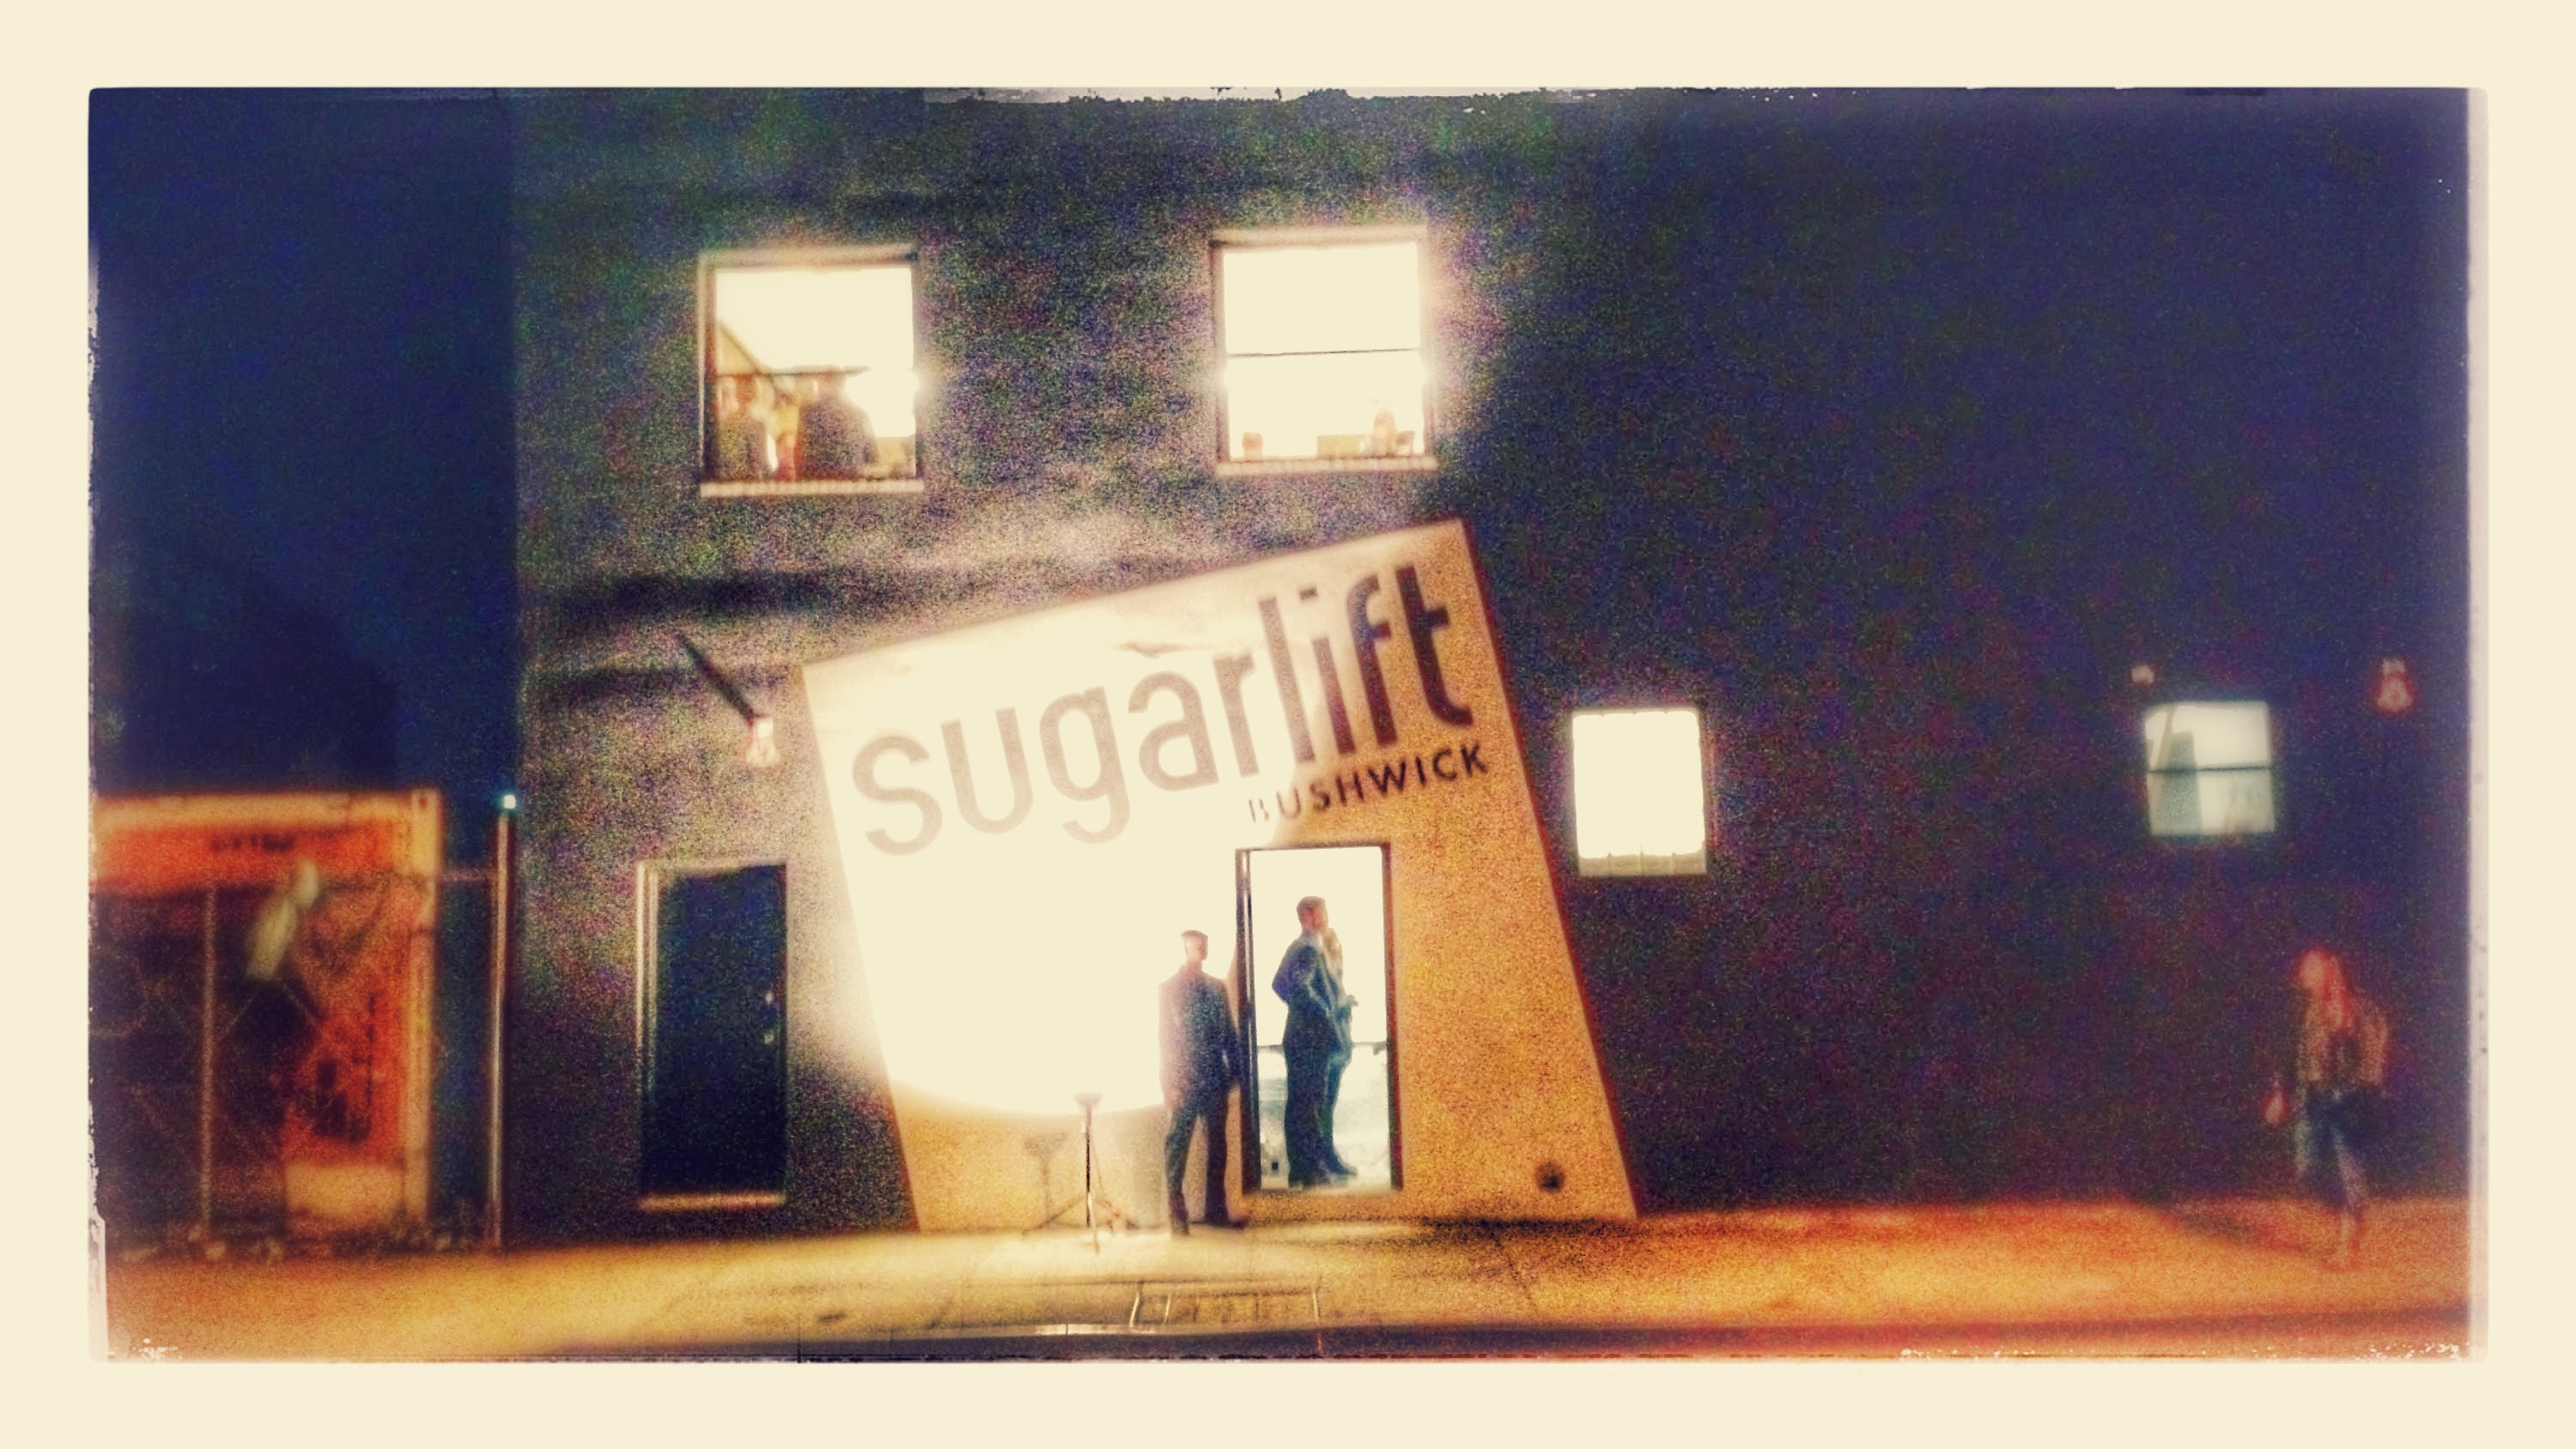 Sugarlift on the night of its opening party in New York